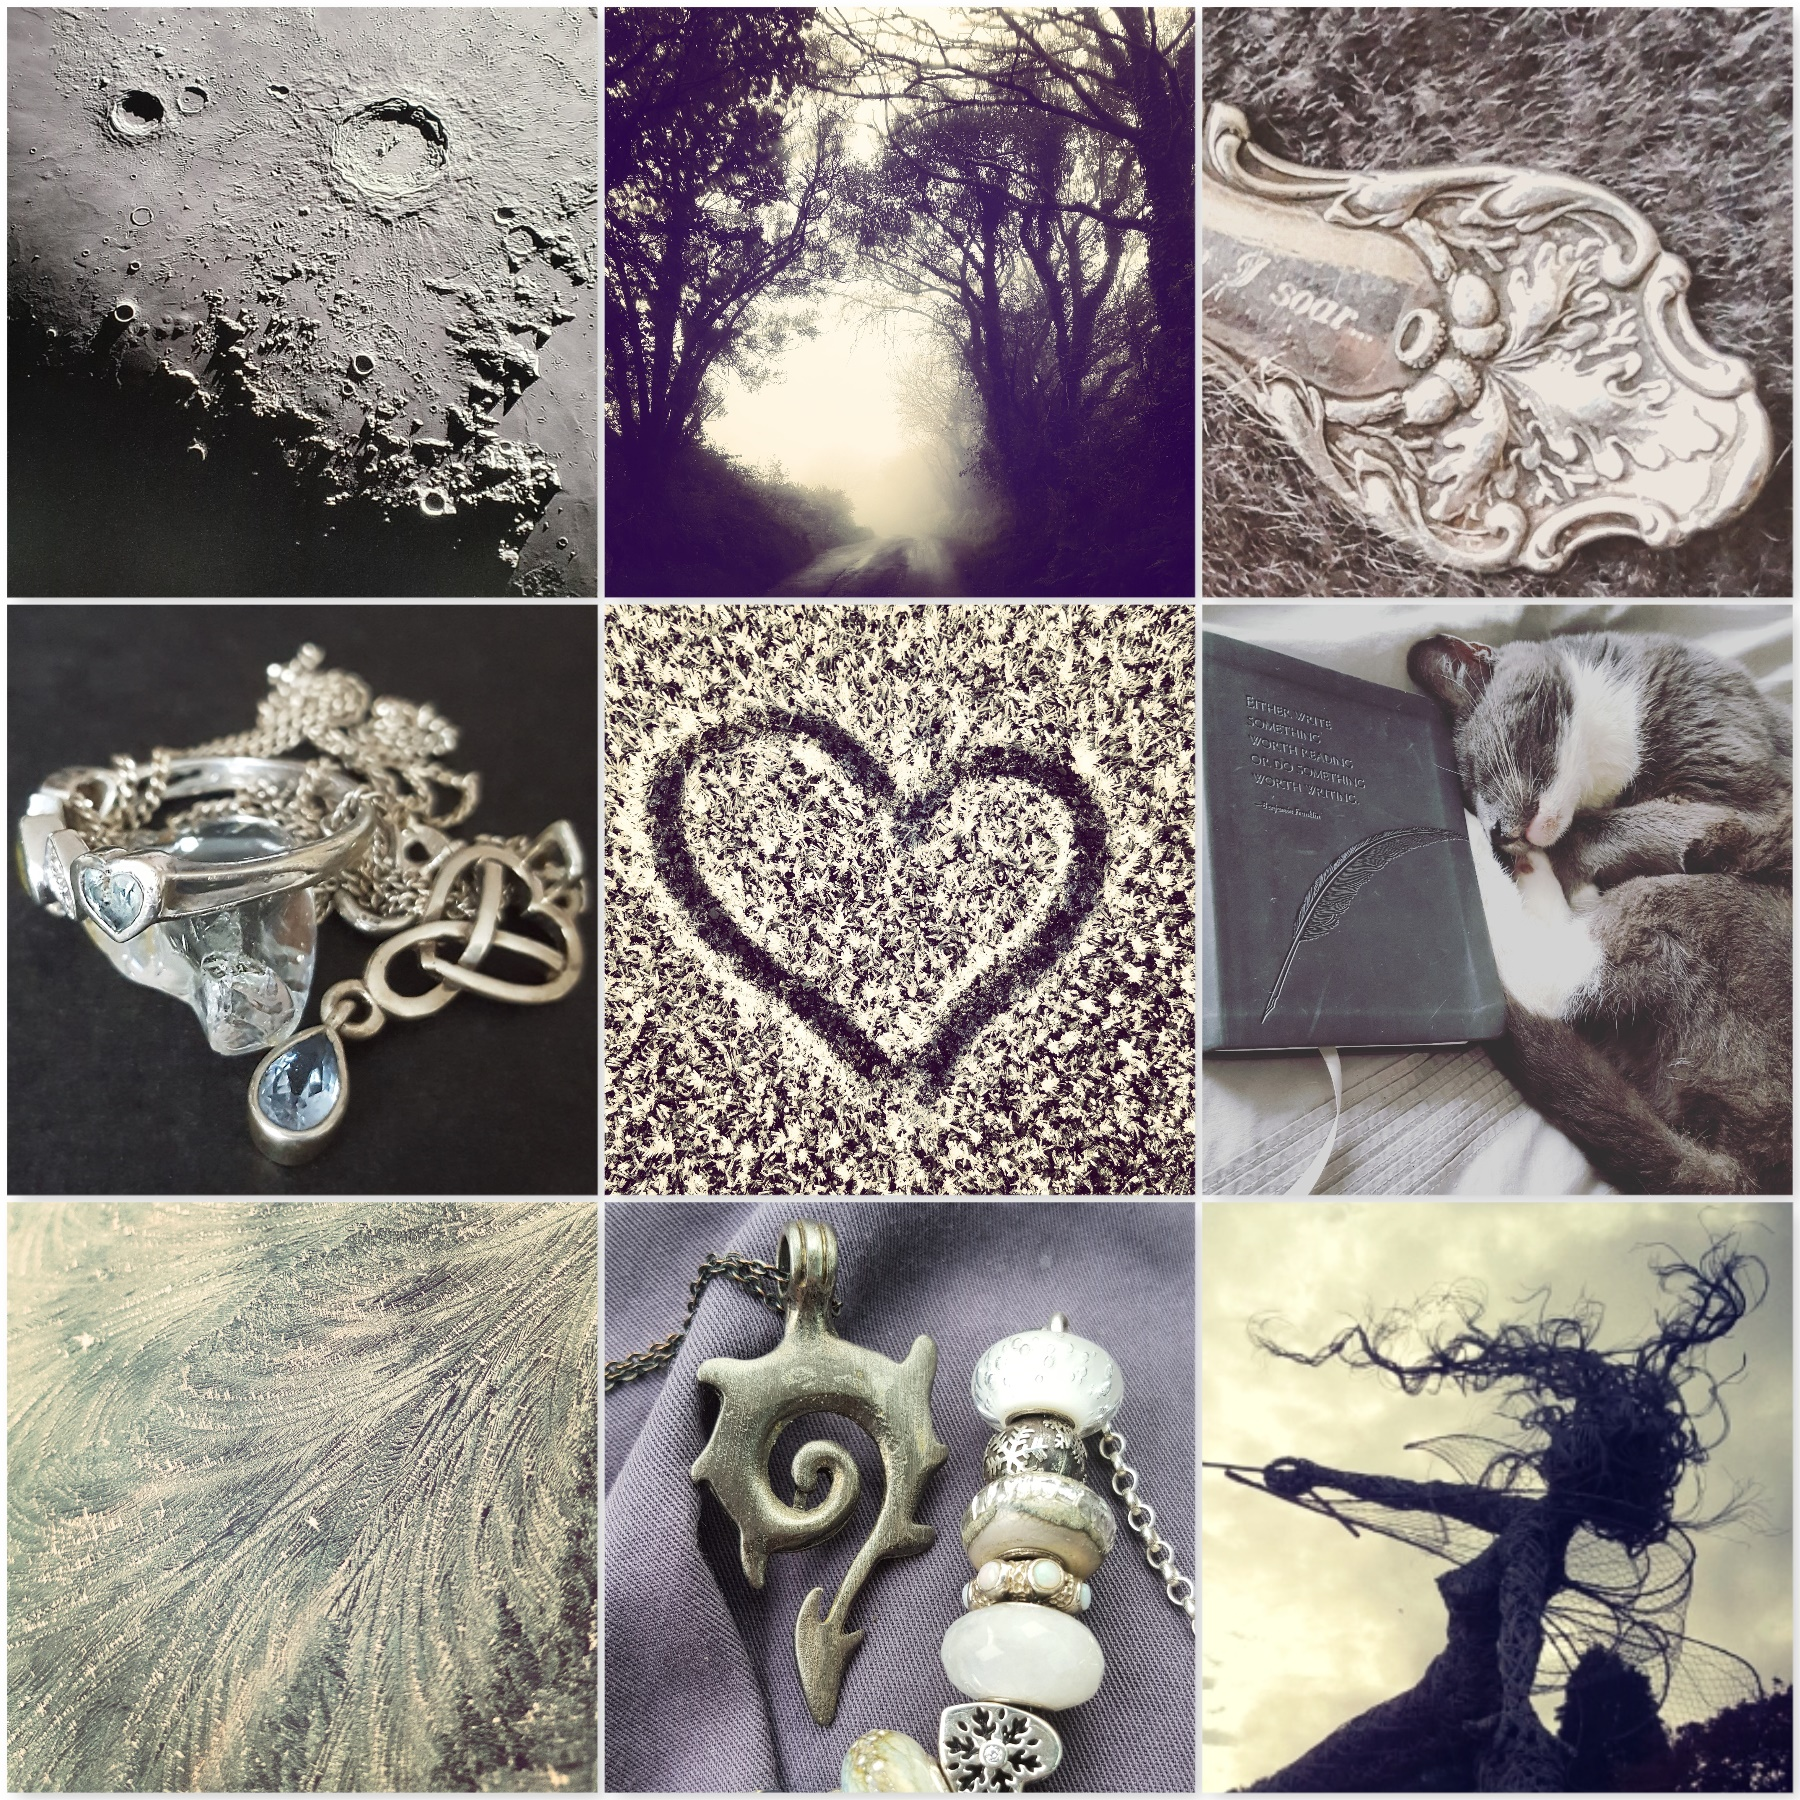 Silver photos: the moon, fog, silver spoon, silver topaz jewellery, frost heart, grey cat, frost, dragon tail necklace, silver fairy, for the last krystallos blog